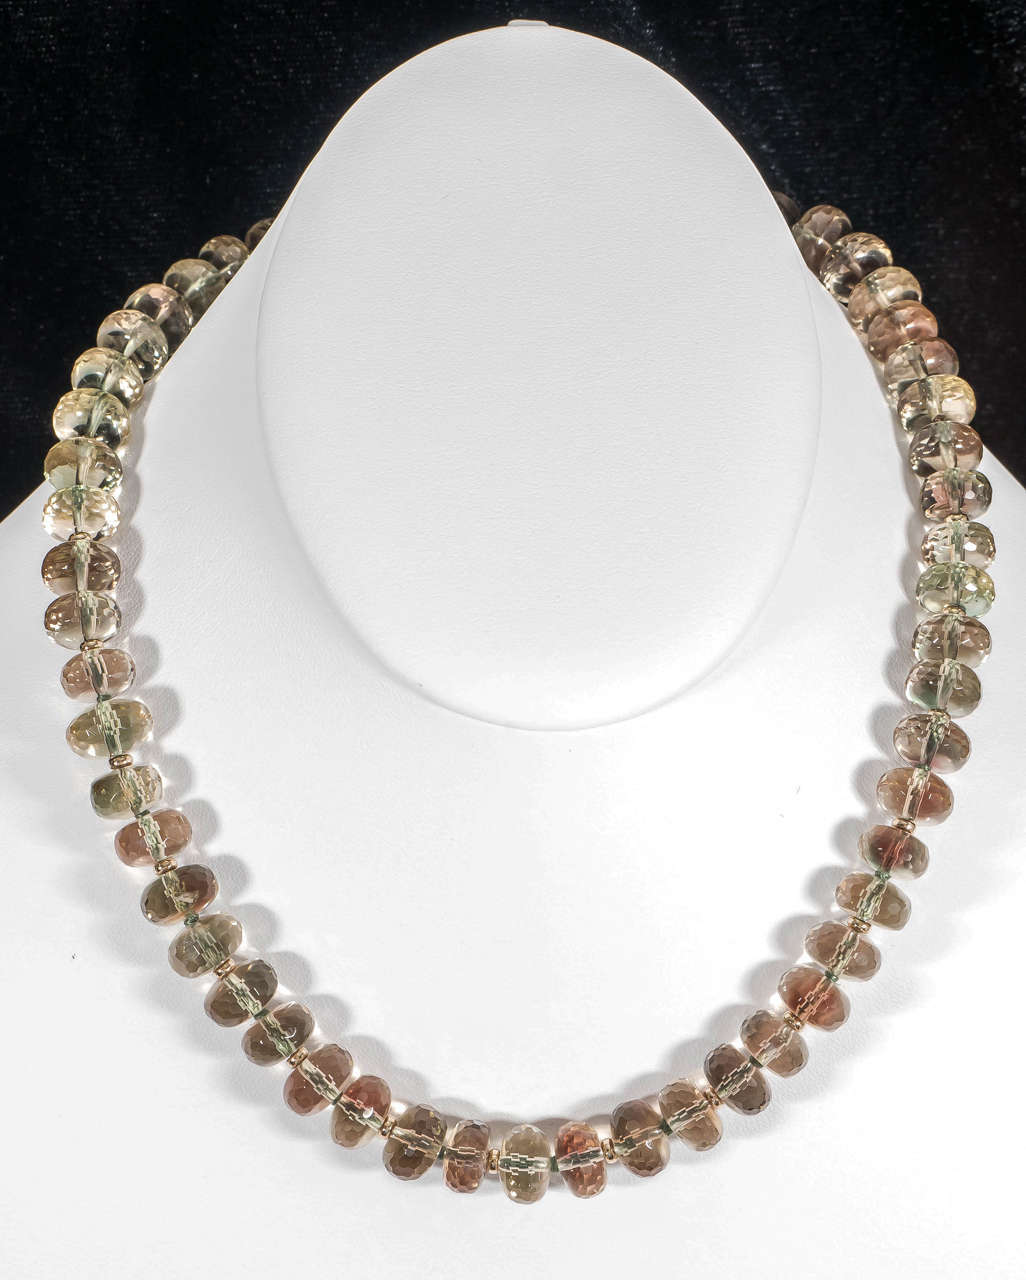 beaded for gold this id yellow naomi features jewelry mm strung oregon and necklaces green sunstone beads sarna j beautiful sale bead diamond necklace b at